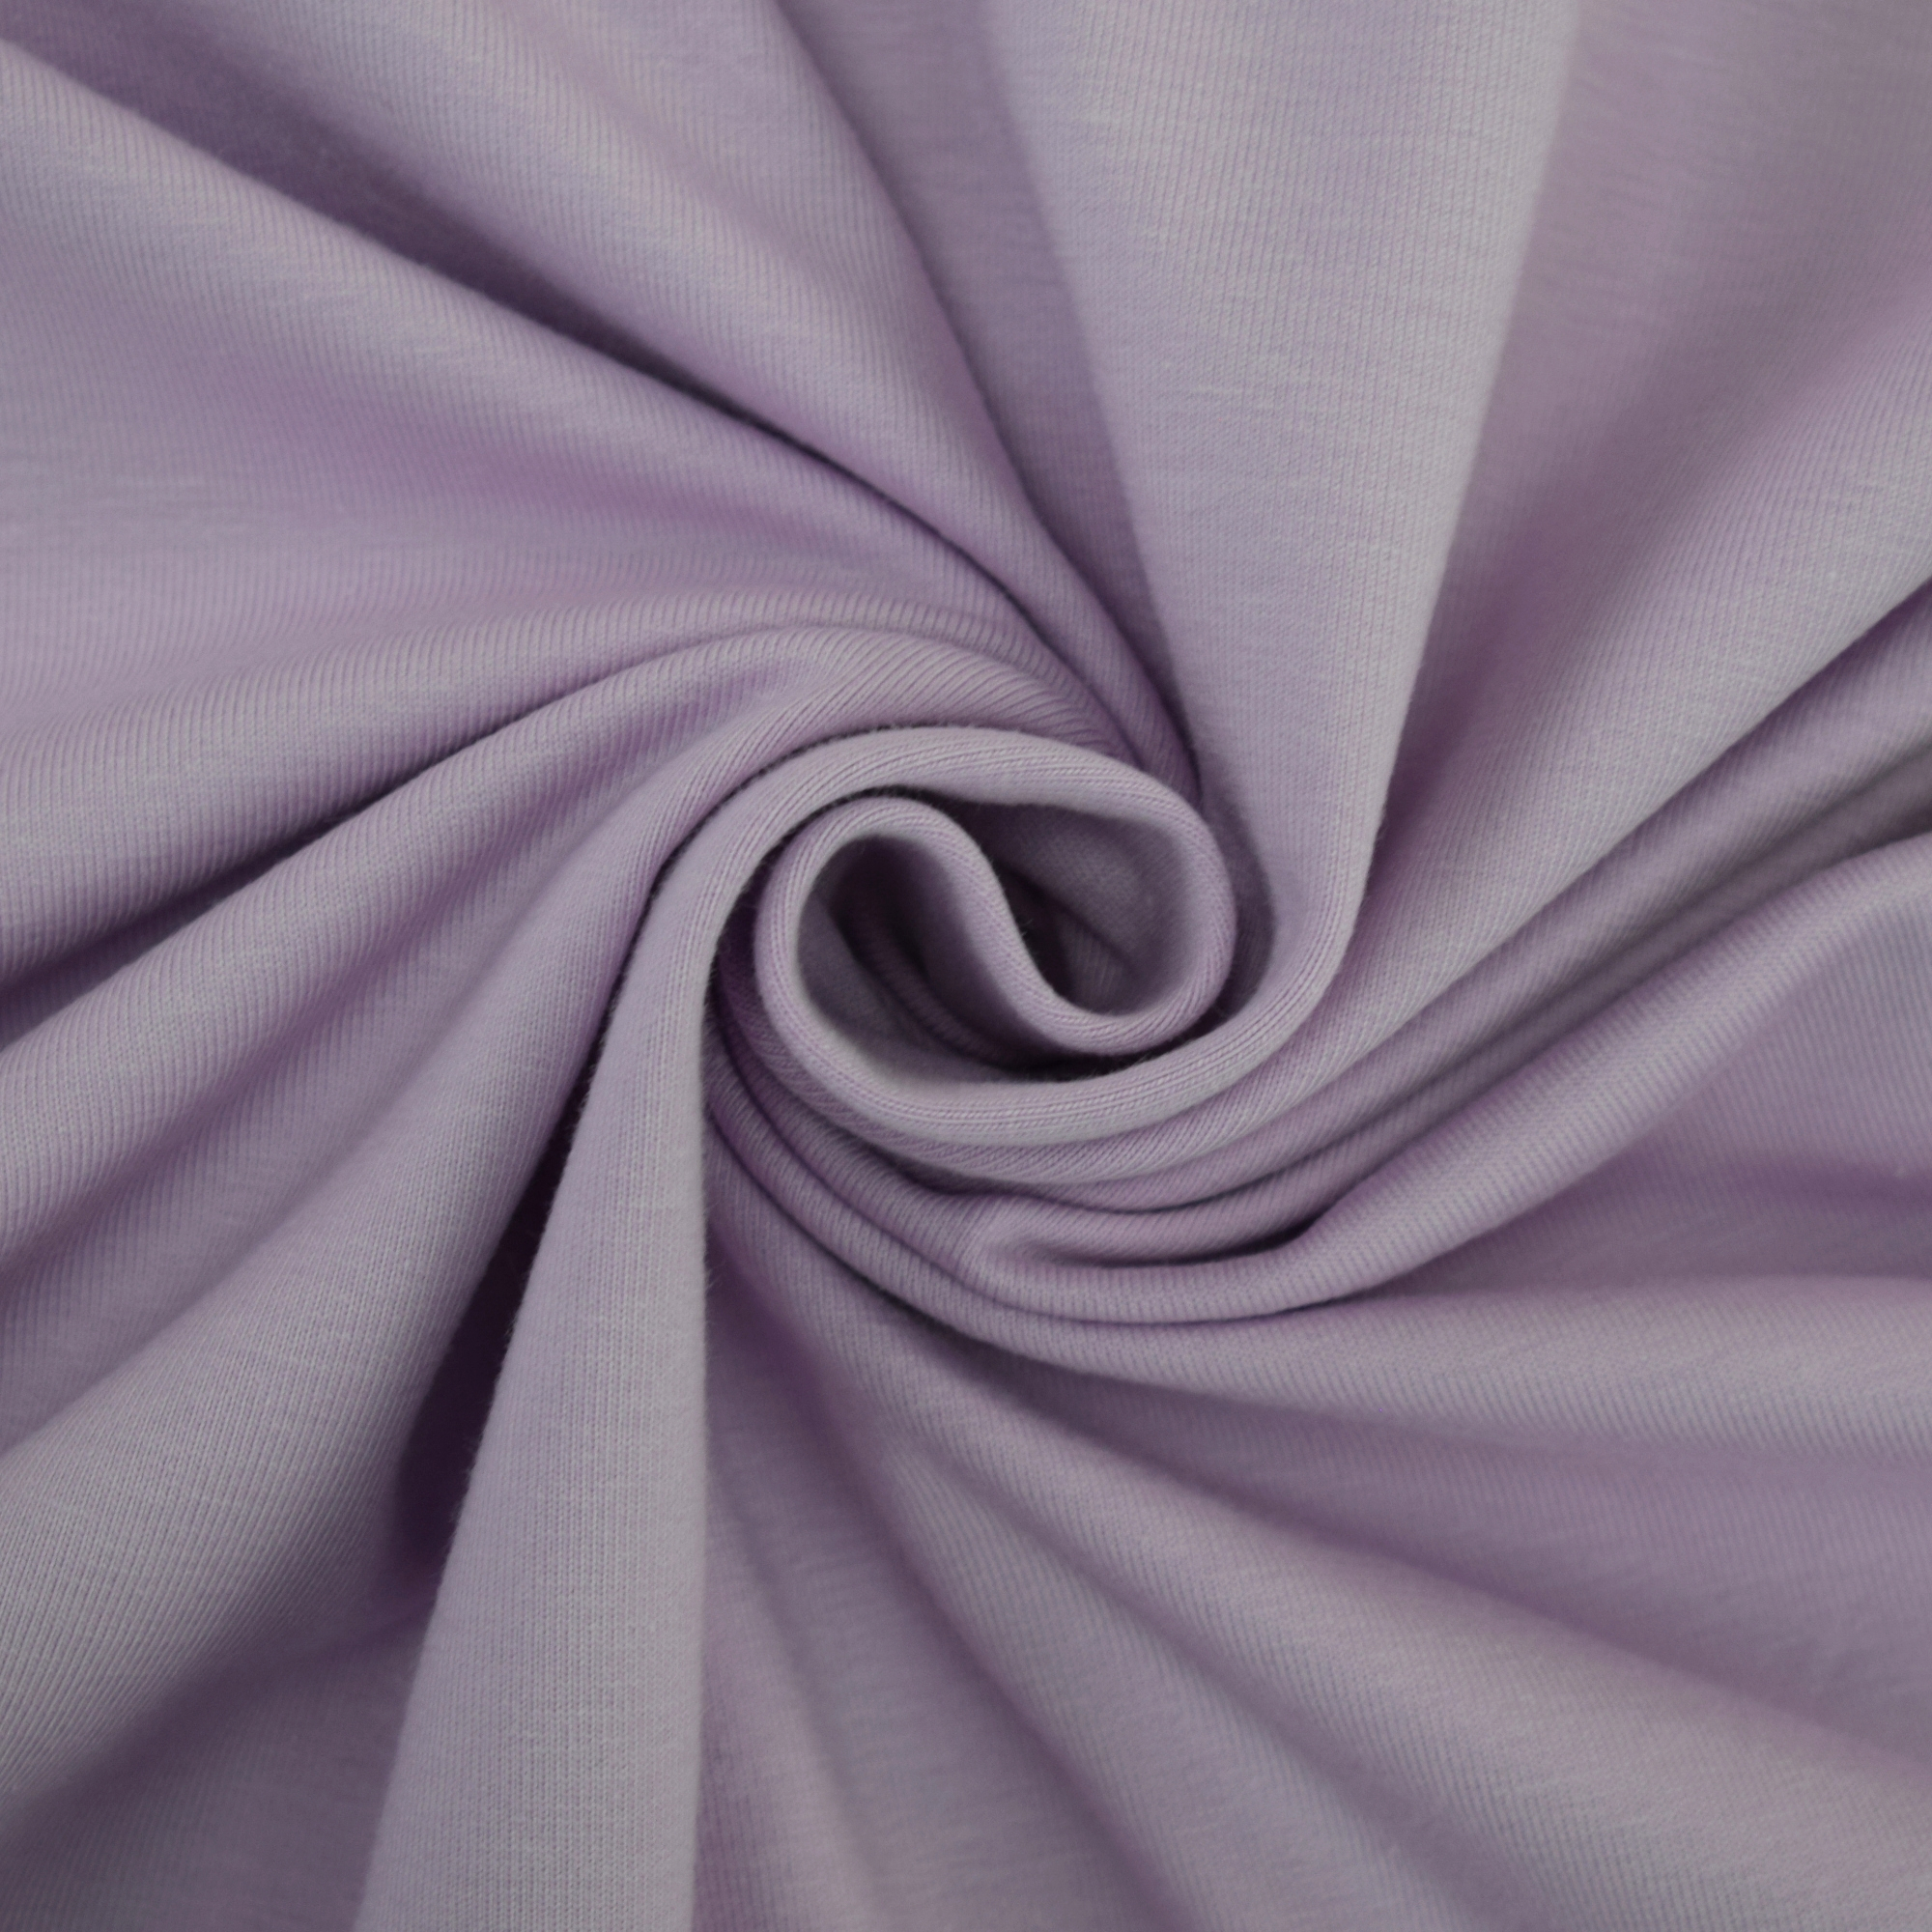 Cotton jersey plain, lilac | 455.421-2205 | rosa